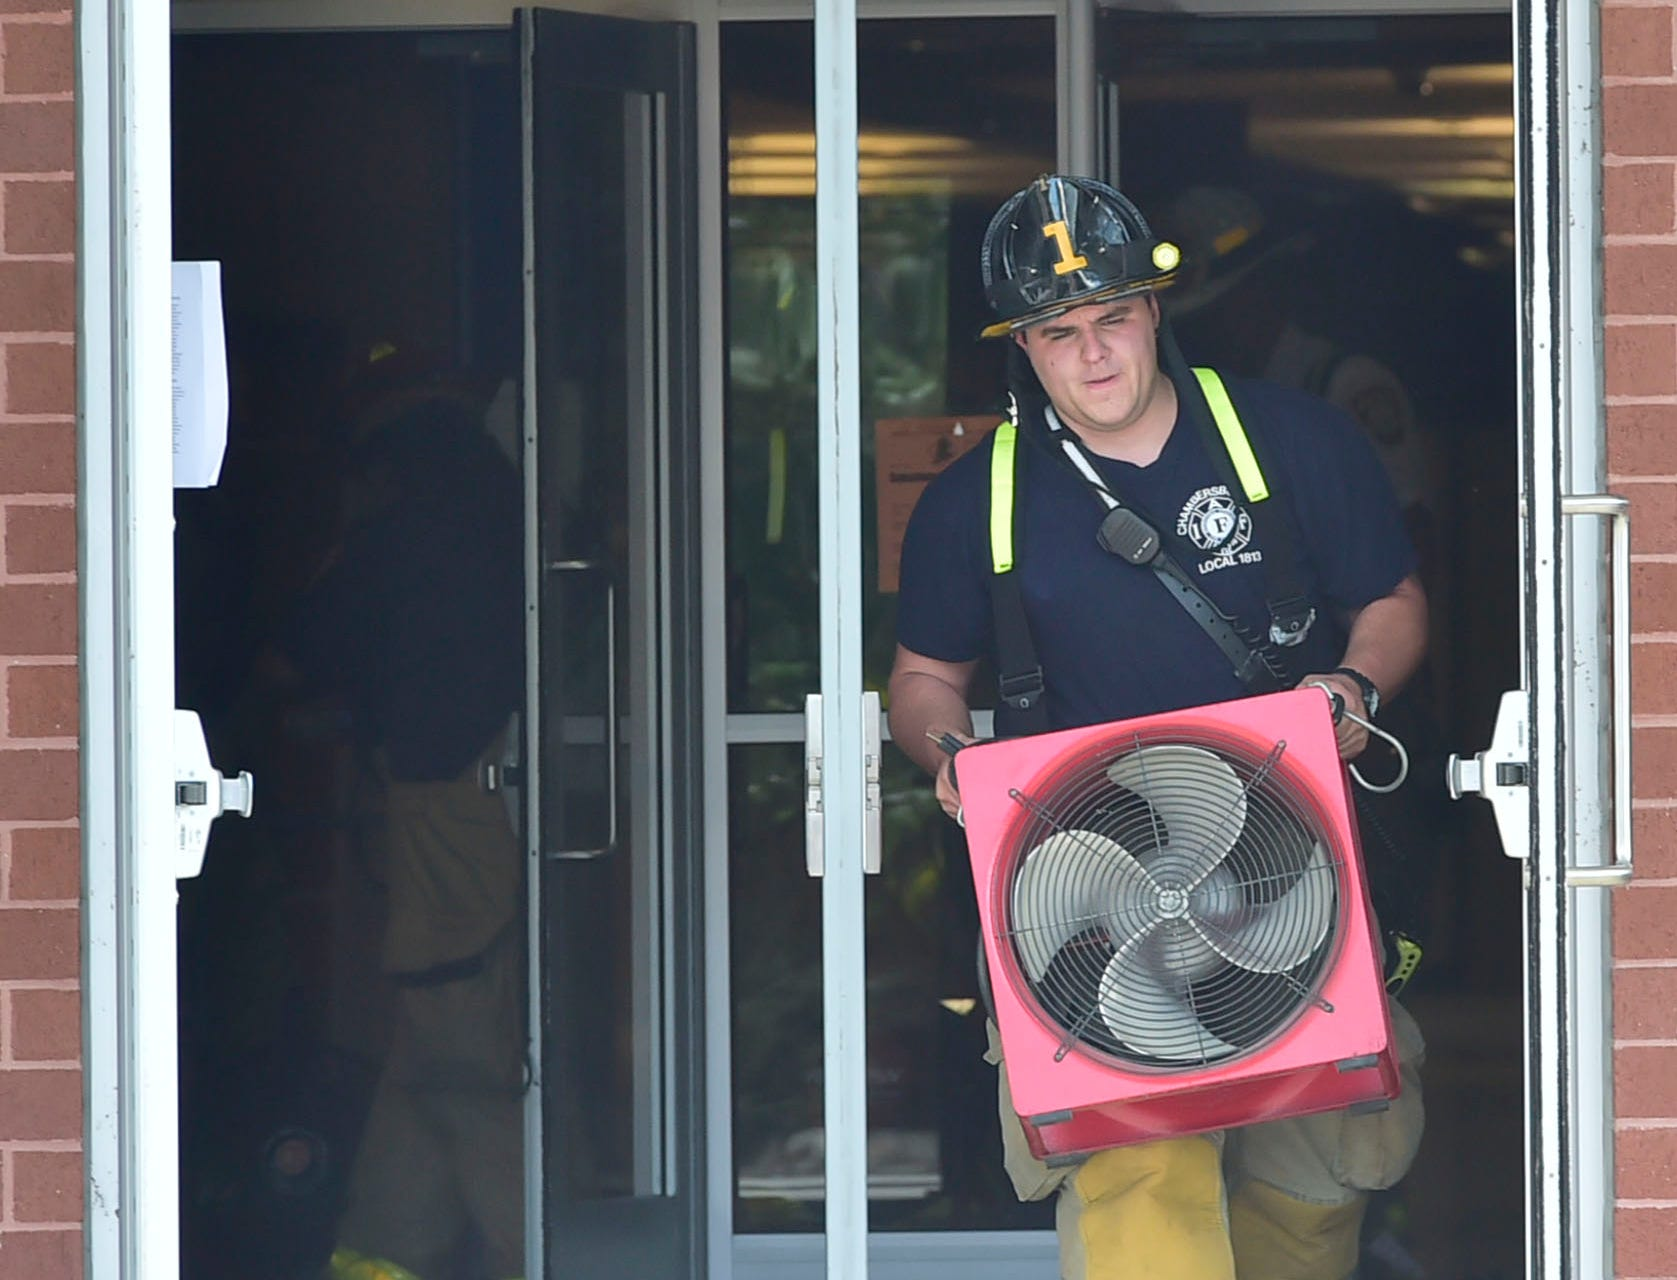 A fireman carries a fan from the building. Chambersburg Area Senior High School students were evacuated Thursday morning, August 30, 2018 after a battery ignited a fire in a storage room , sending smoke throughout the building.